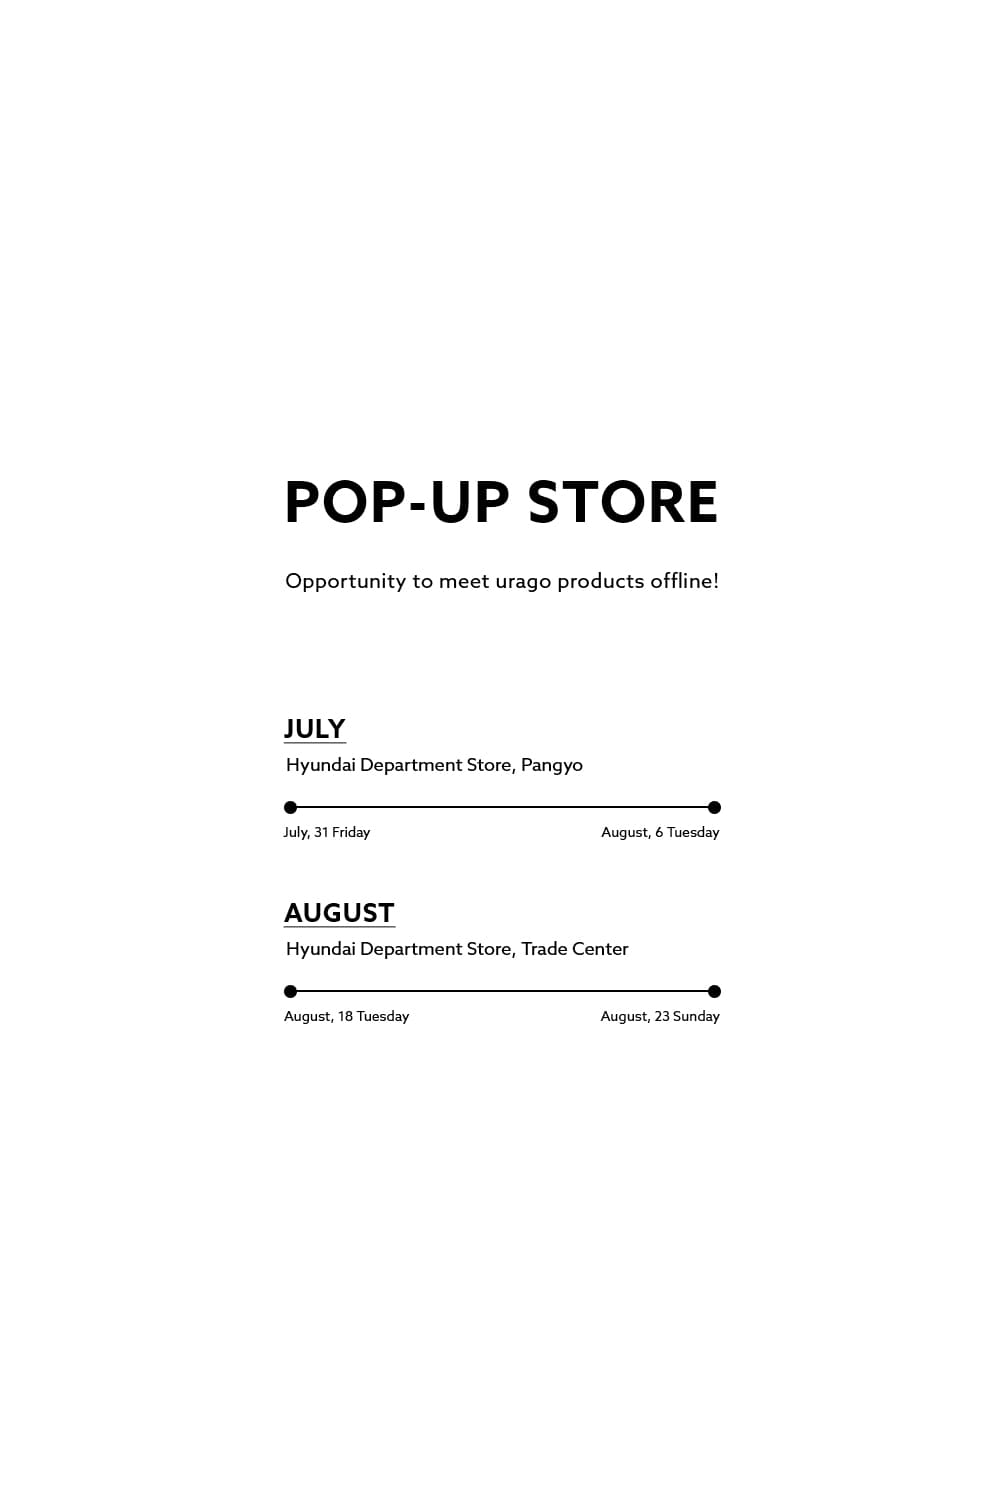 URAGO POP-UP STORE